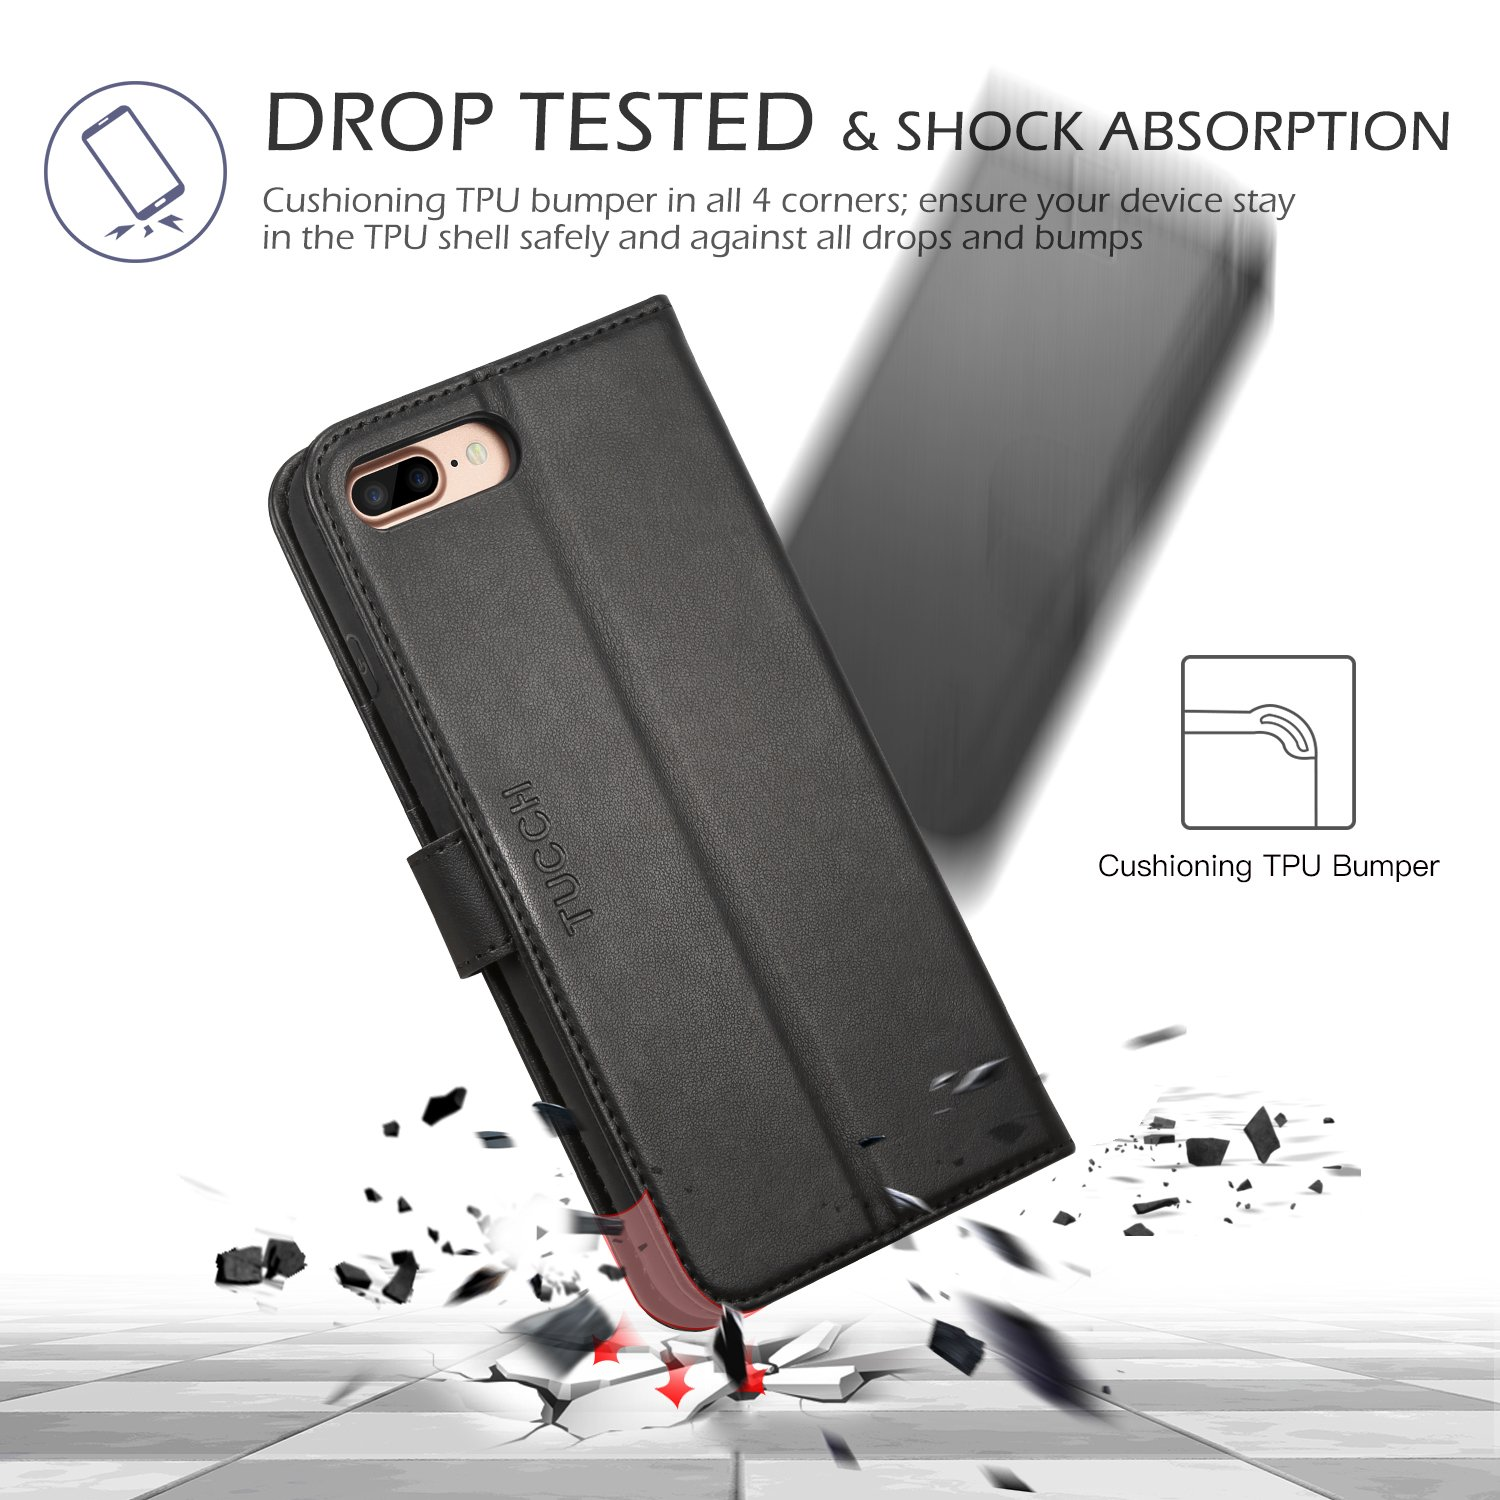 iPhone 8 Plus Wallet Case, iPhone 7 Plus Case, TUCCH Premium PU Leather Flip Folio Case with Card Slot, Cash Clip, Stand Holder and Magnetic Closure [TPU Shockproof Interior Protective Case], Black by TUCCH (Image #8)